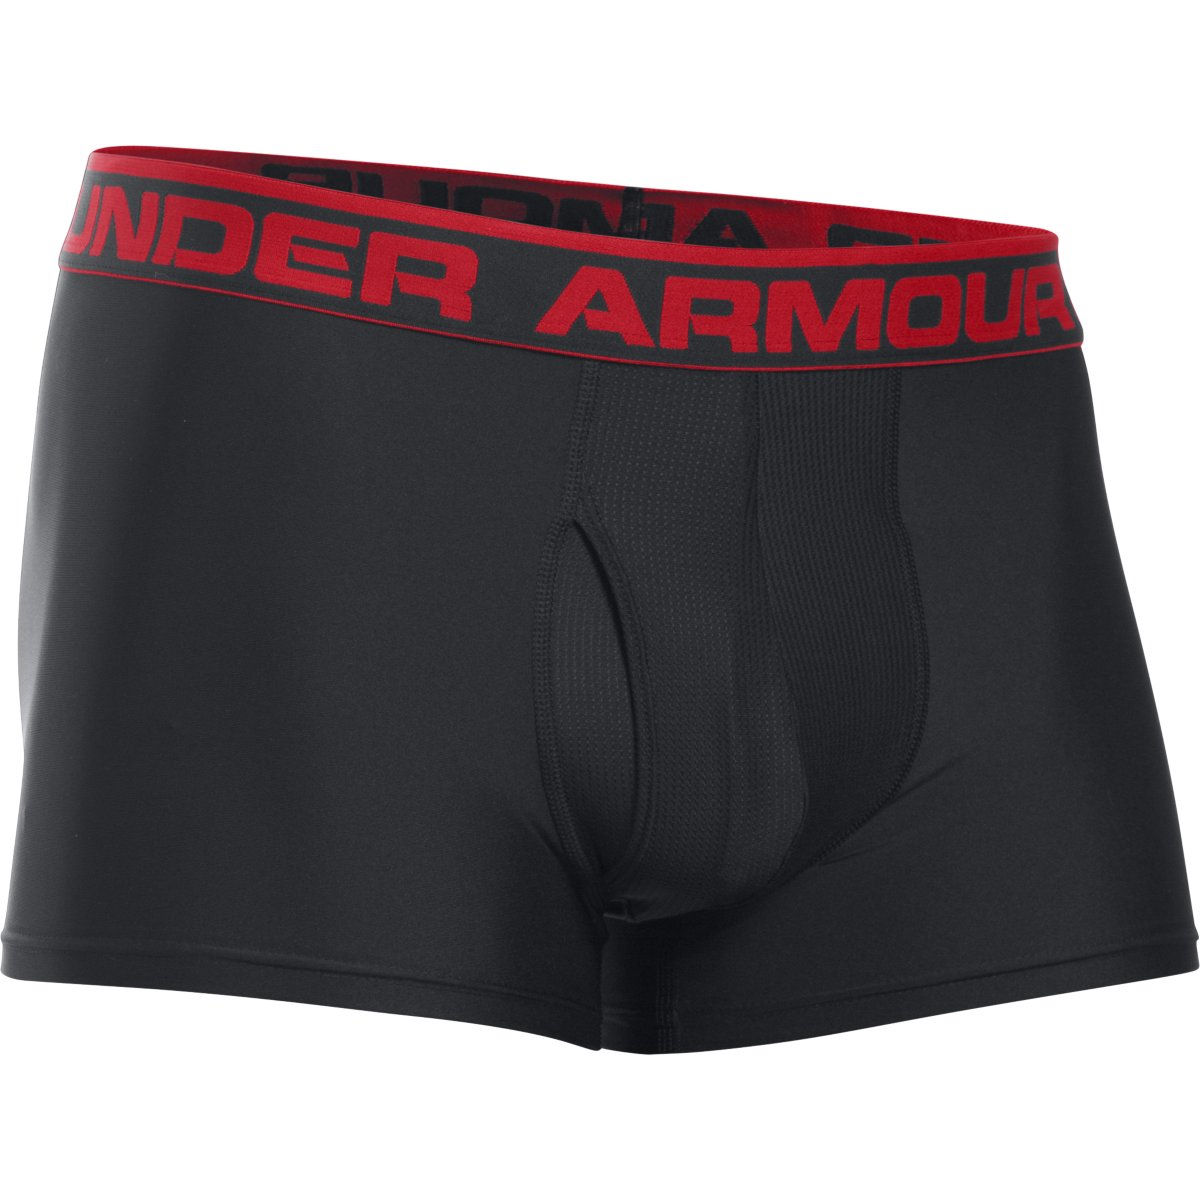 Boxer Under Armour The Original (environ 8 cm) - XL Noir